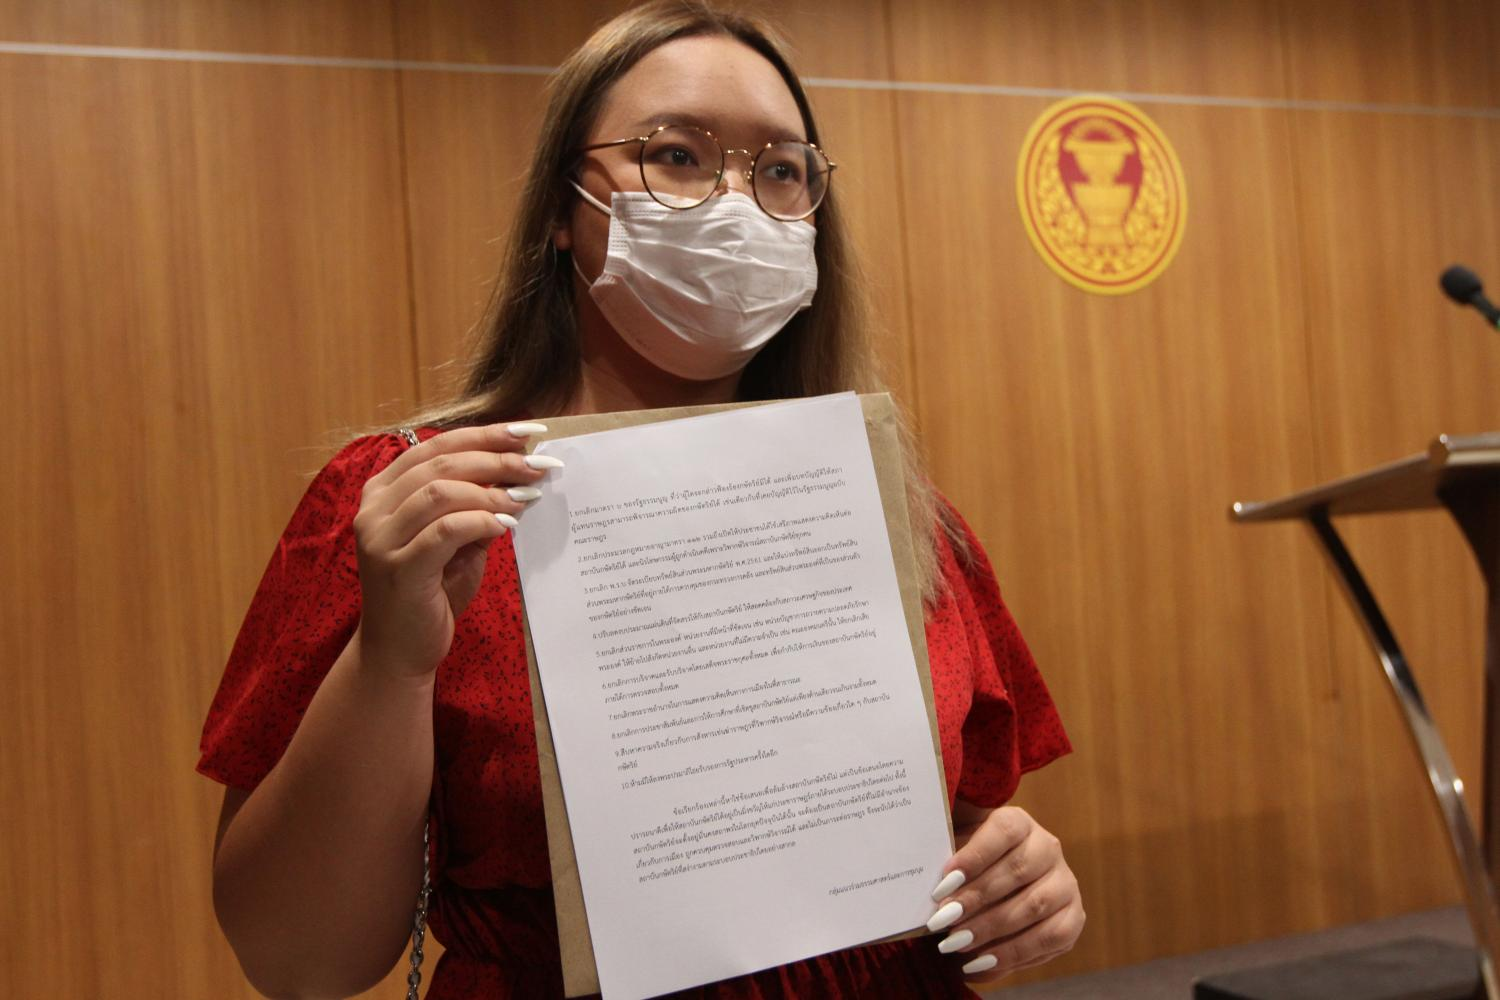 Activist Panasaya Sitthijirawattanakul with the document she submitted. (Photo by   Wichan Charoenkiatpakul)